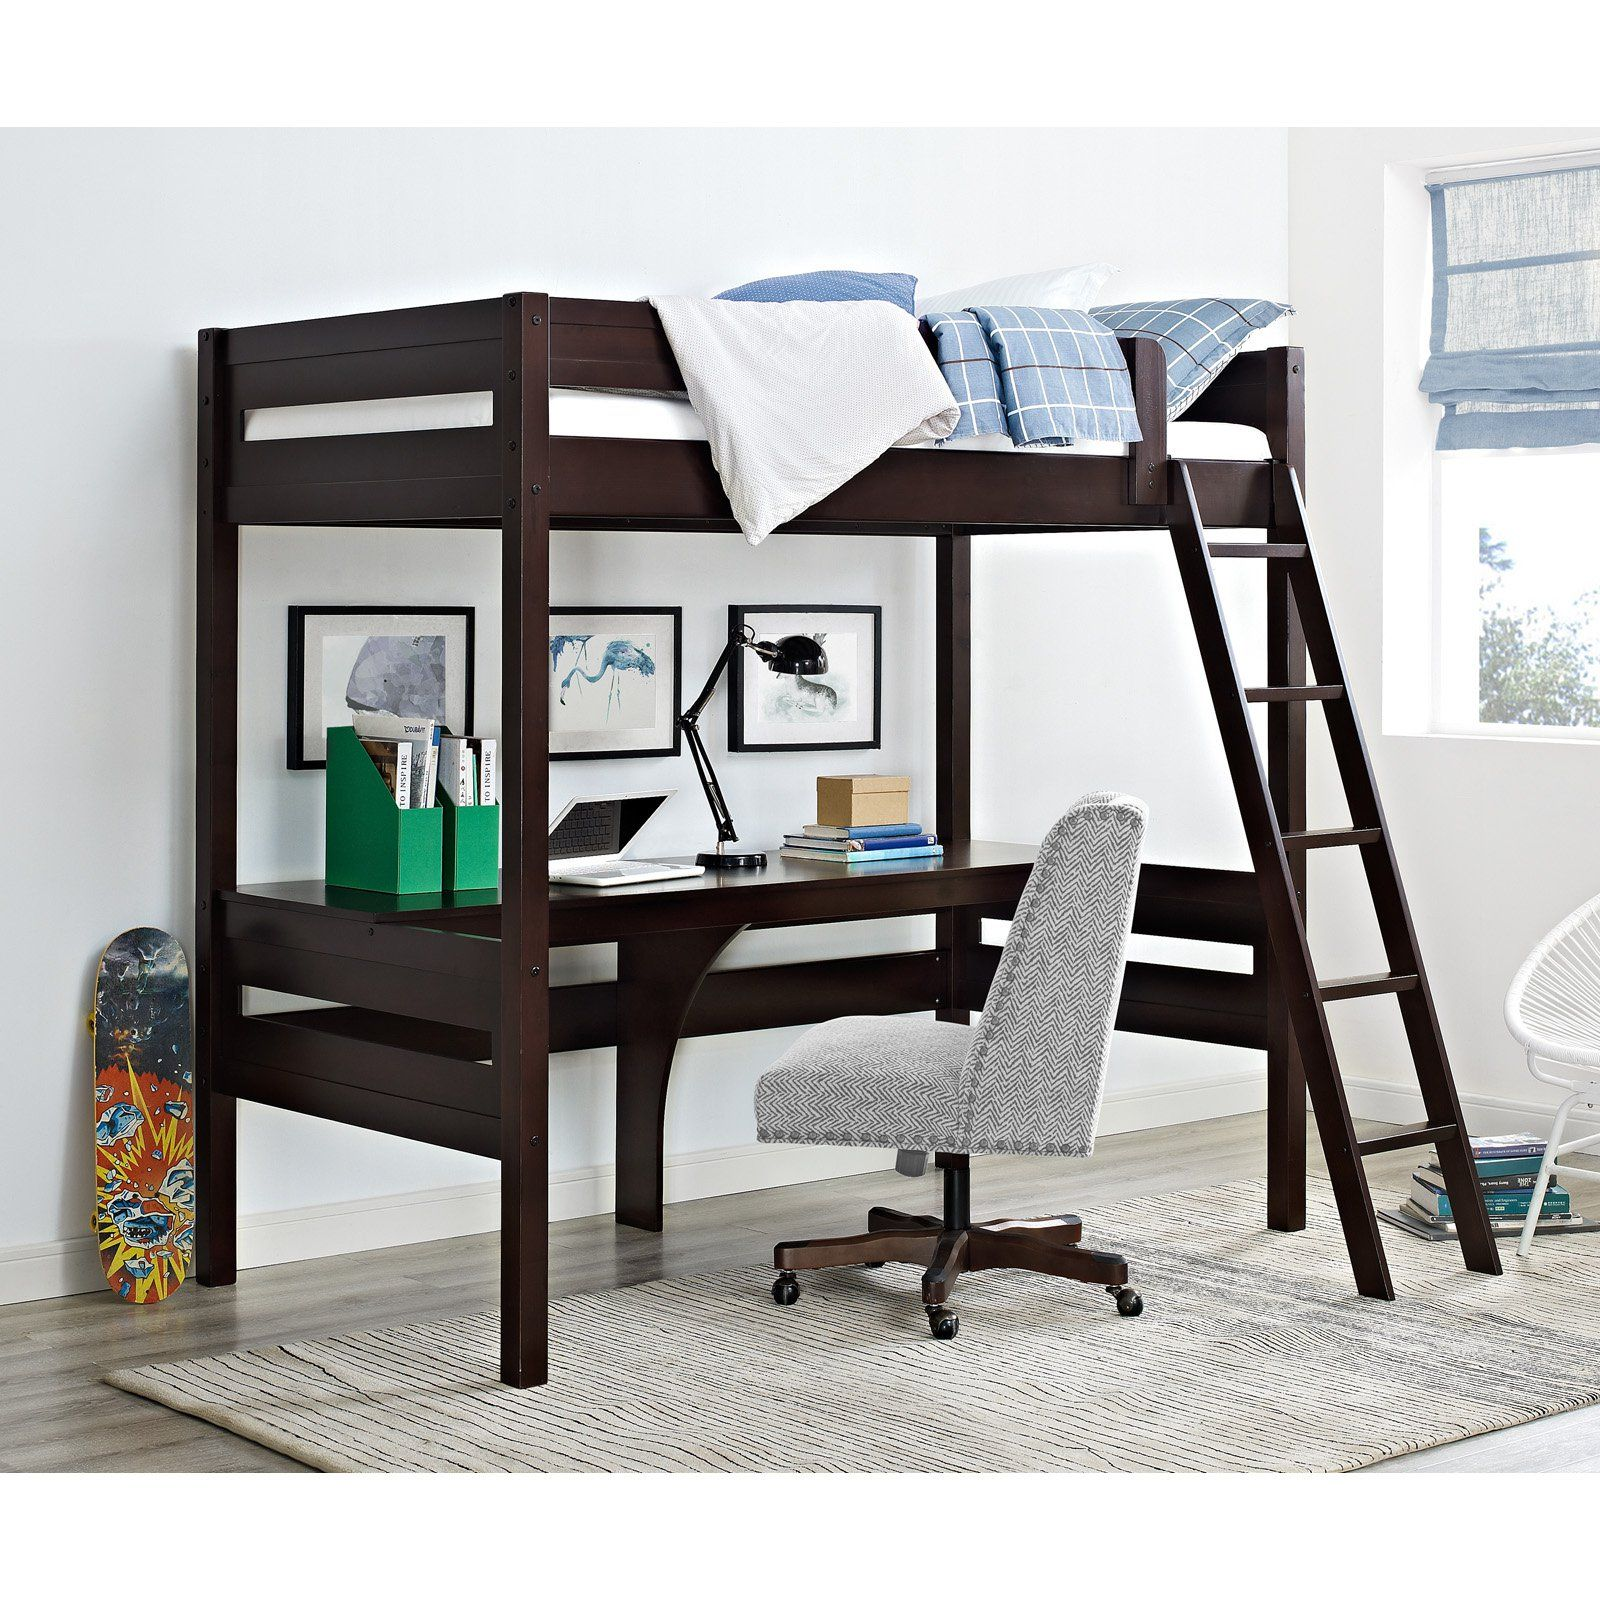 bed desk twin size loft beds ikea drawers underneath cheap full target of storage over combo with bunk walmart